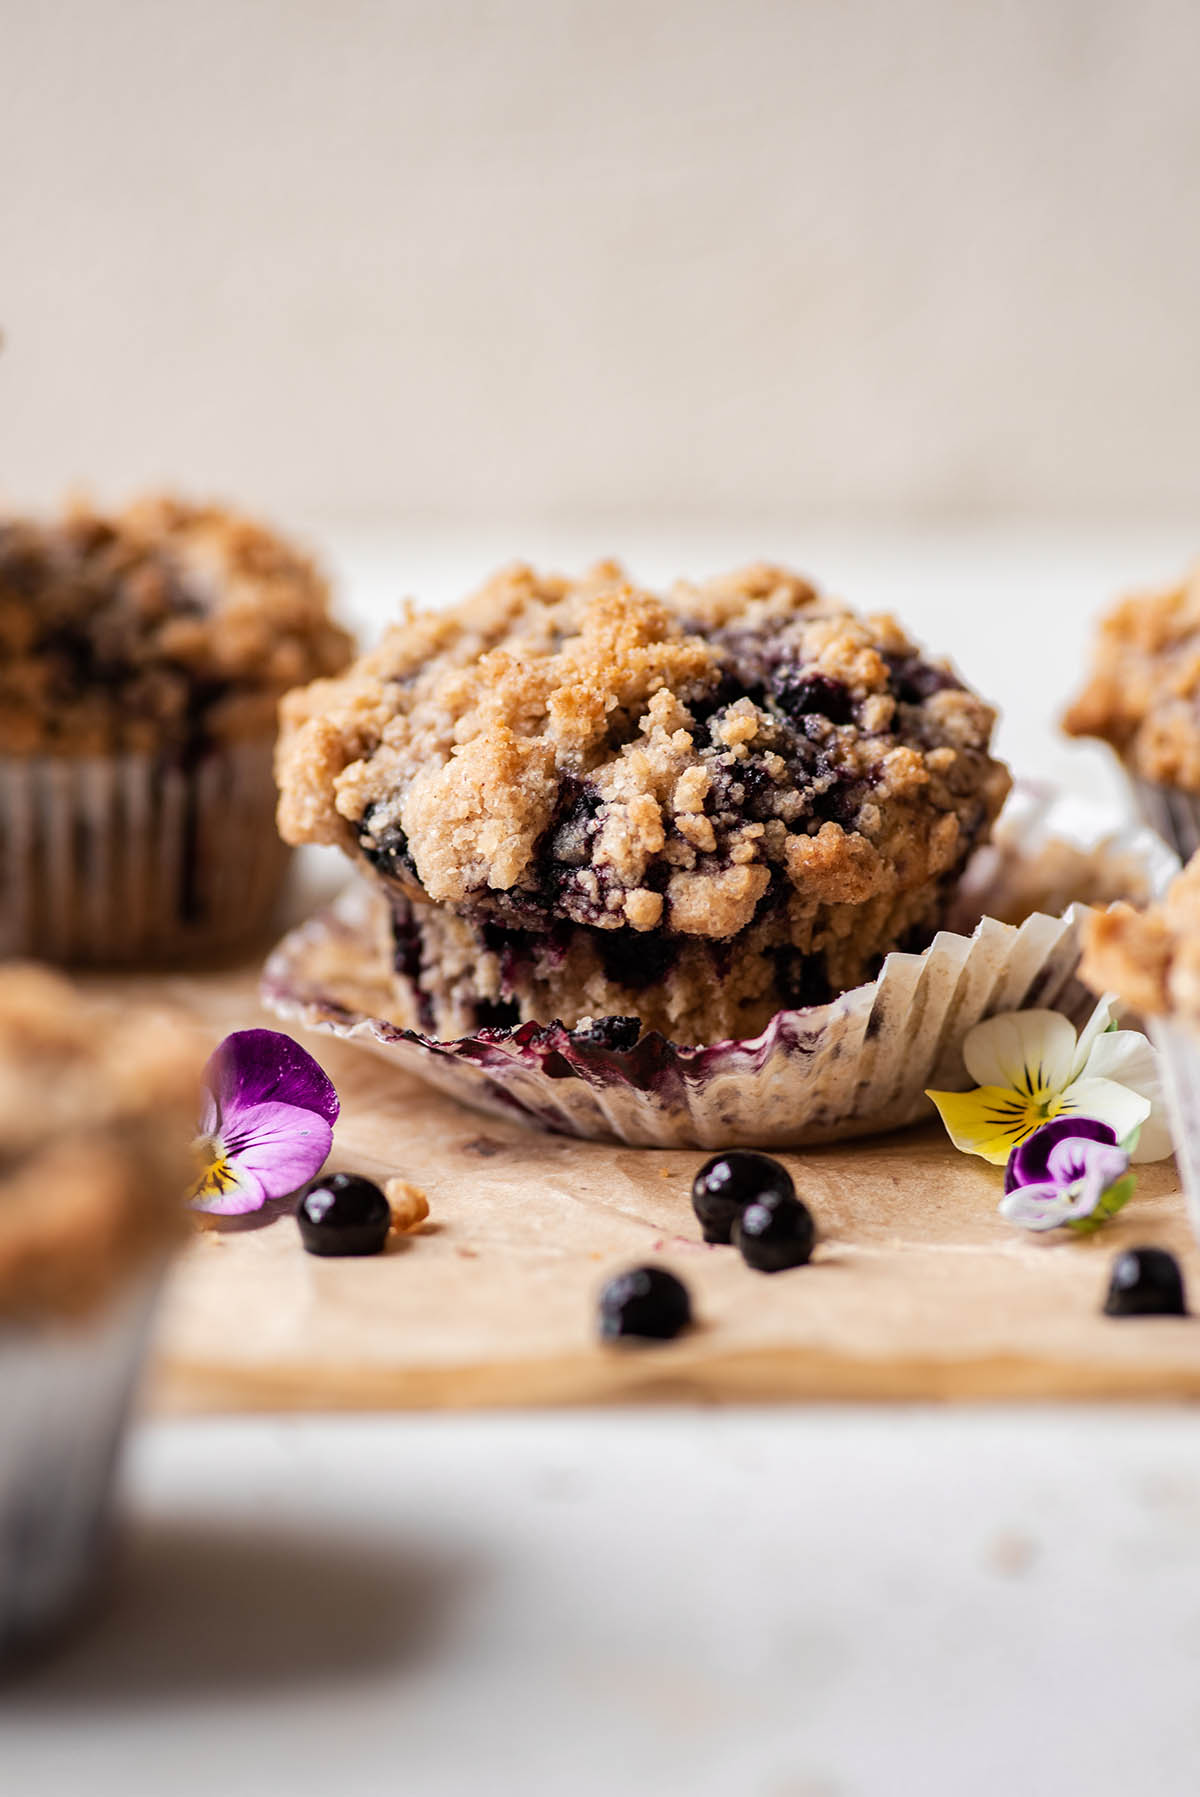 A blueberry streusel muffin with the paper liner folded down.